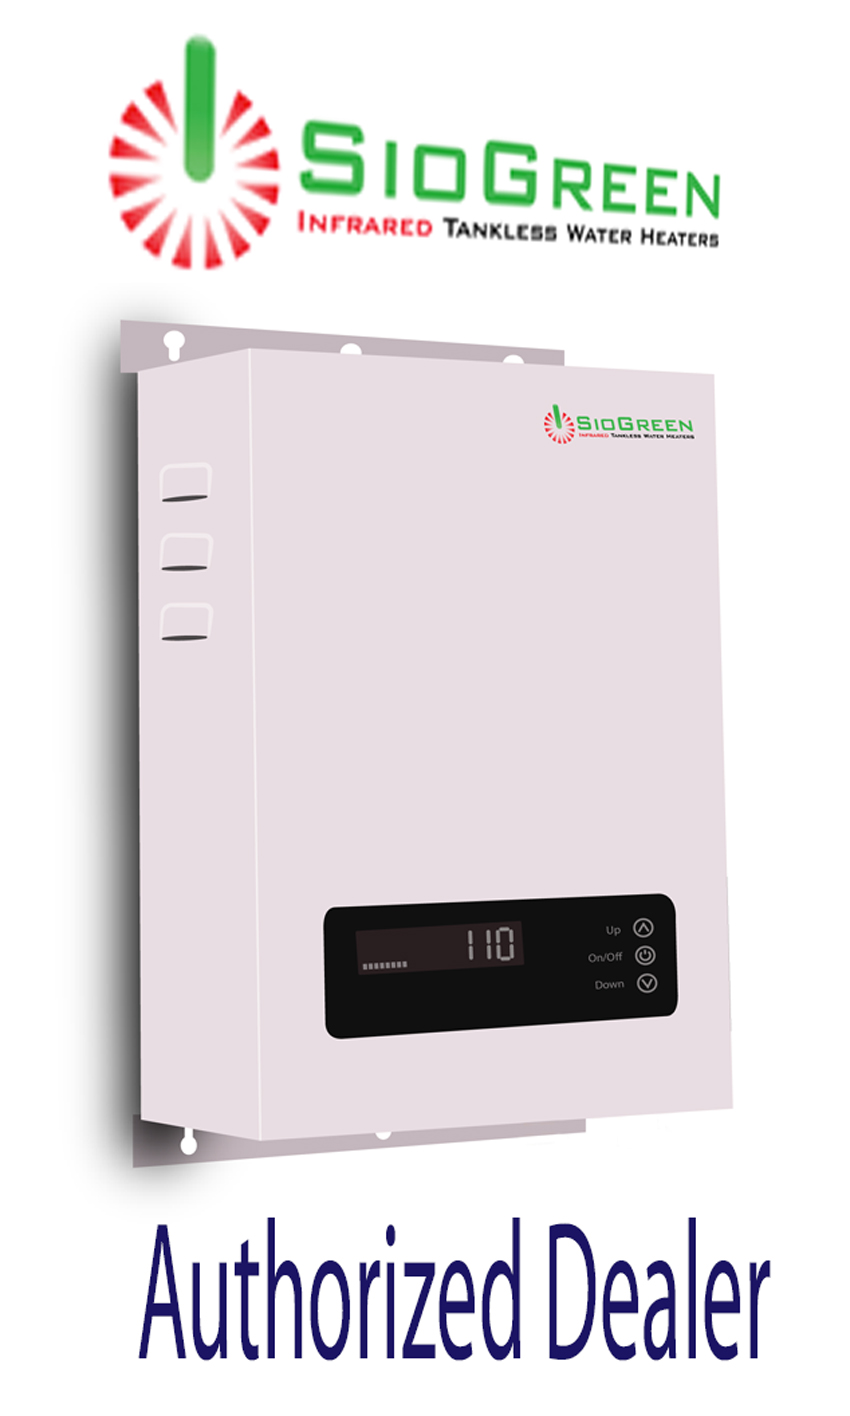 SioGreen Infrared Tankless Water Heater Model SIO18